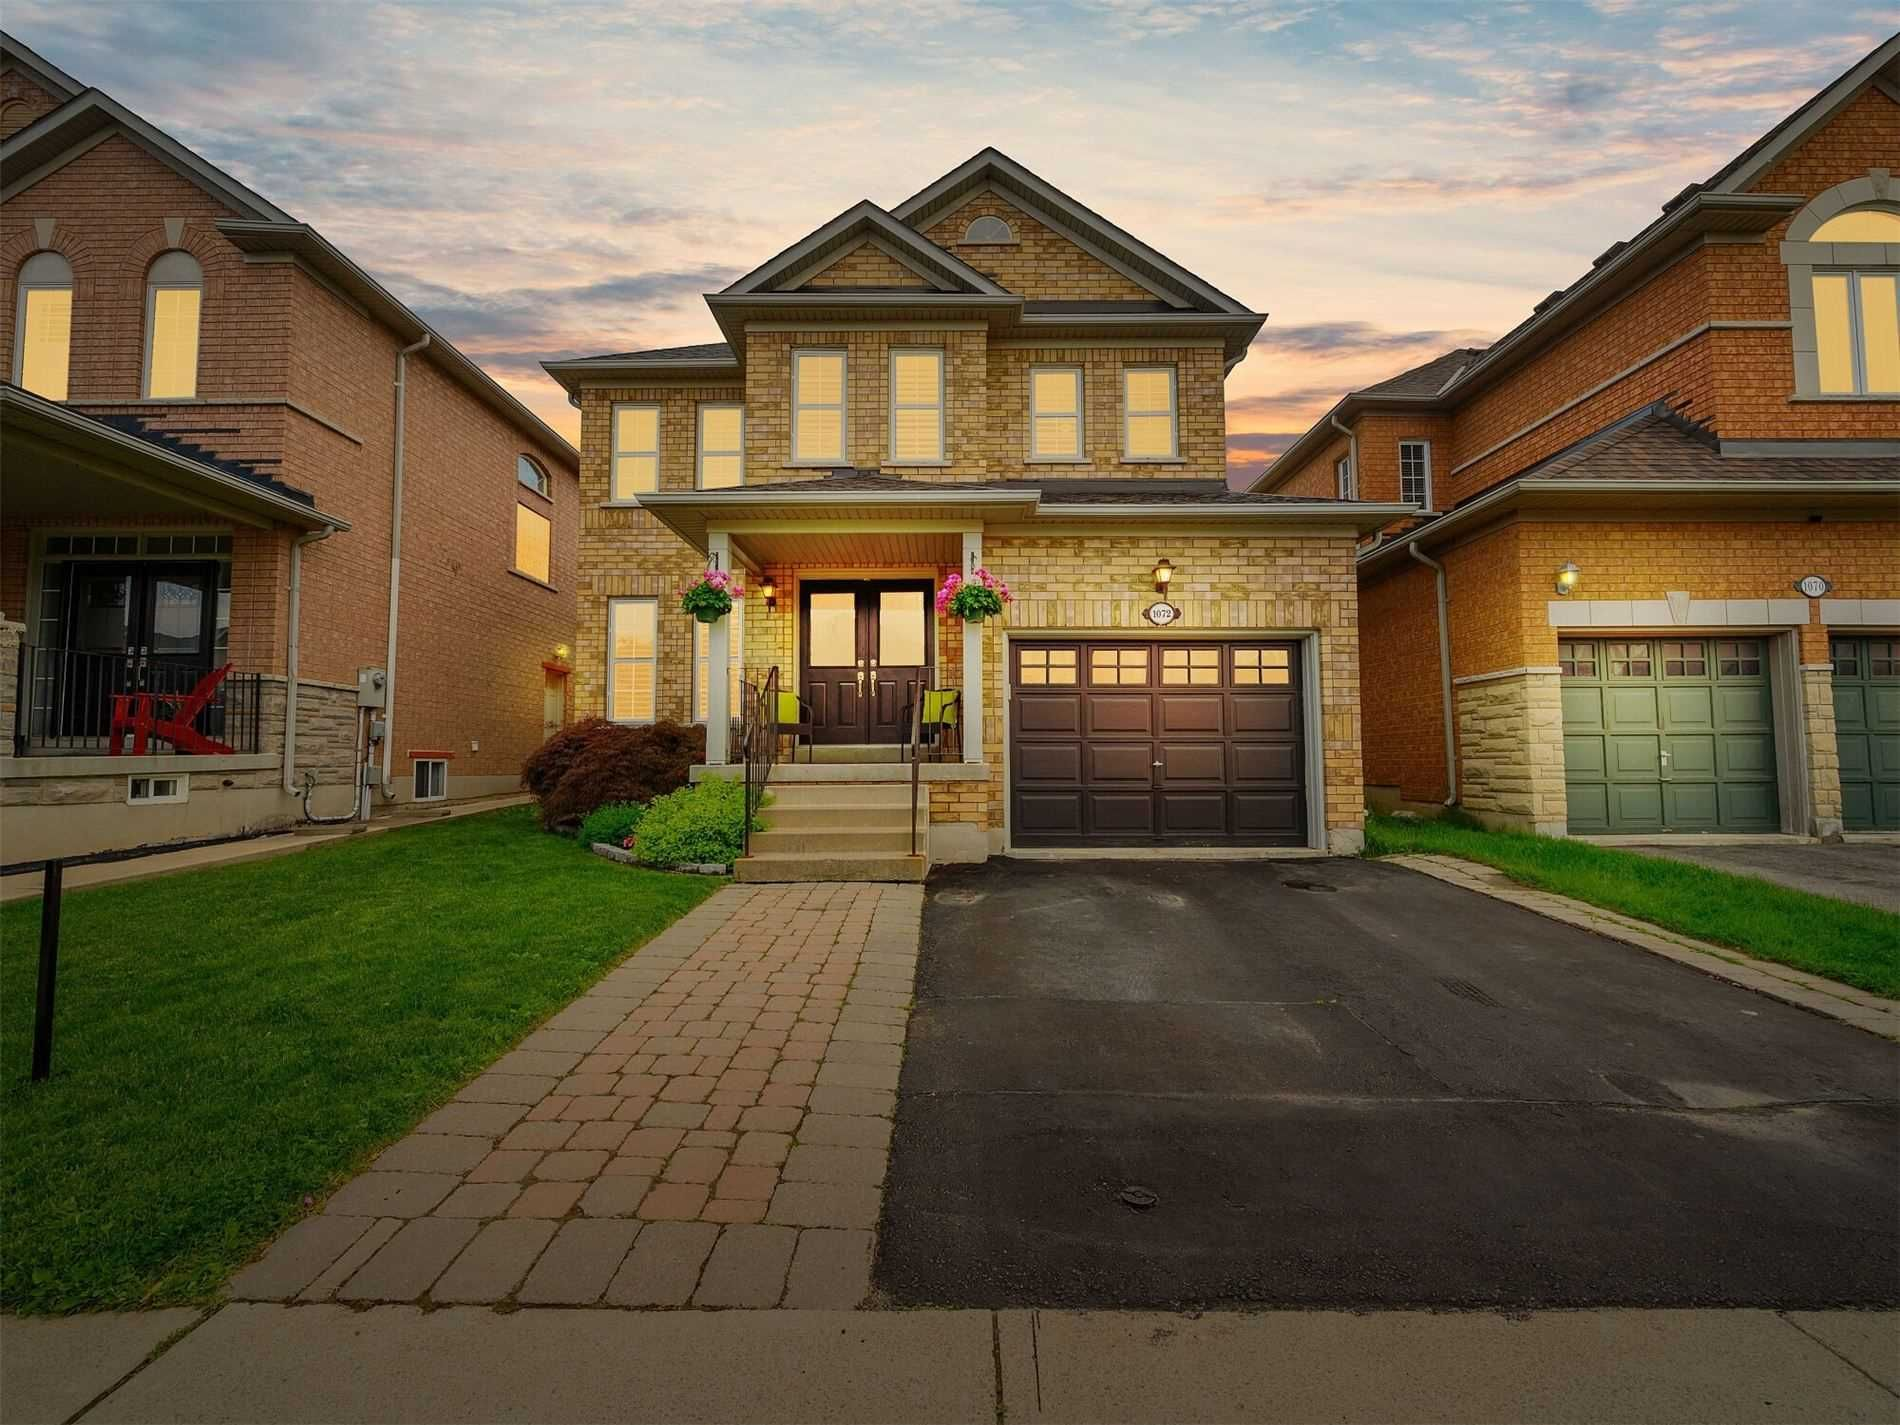 Main Photo: 1072 Sprucedale Lane in Milton: Dempsey House (2-Storey) for sale : MLS®# W4790208